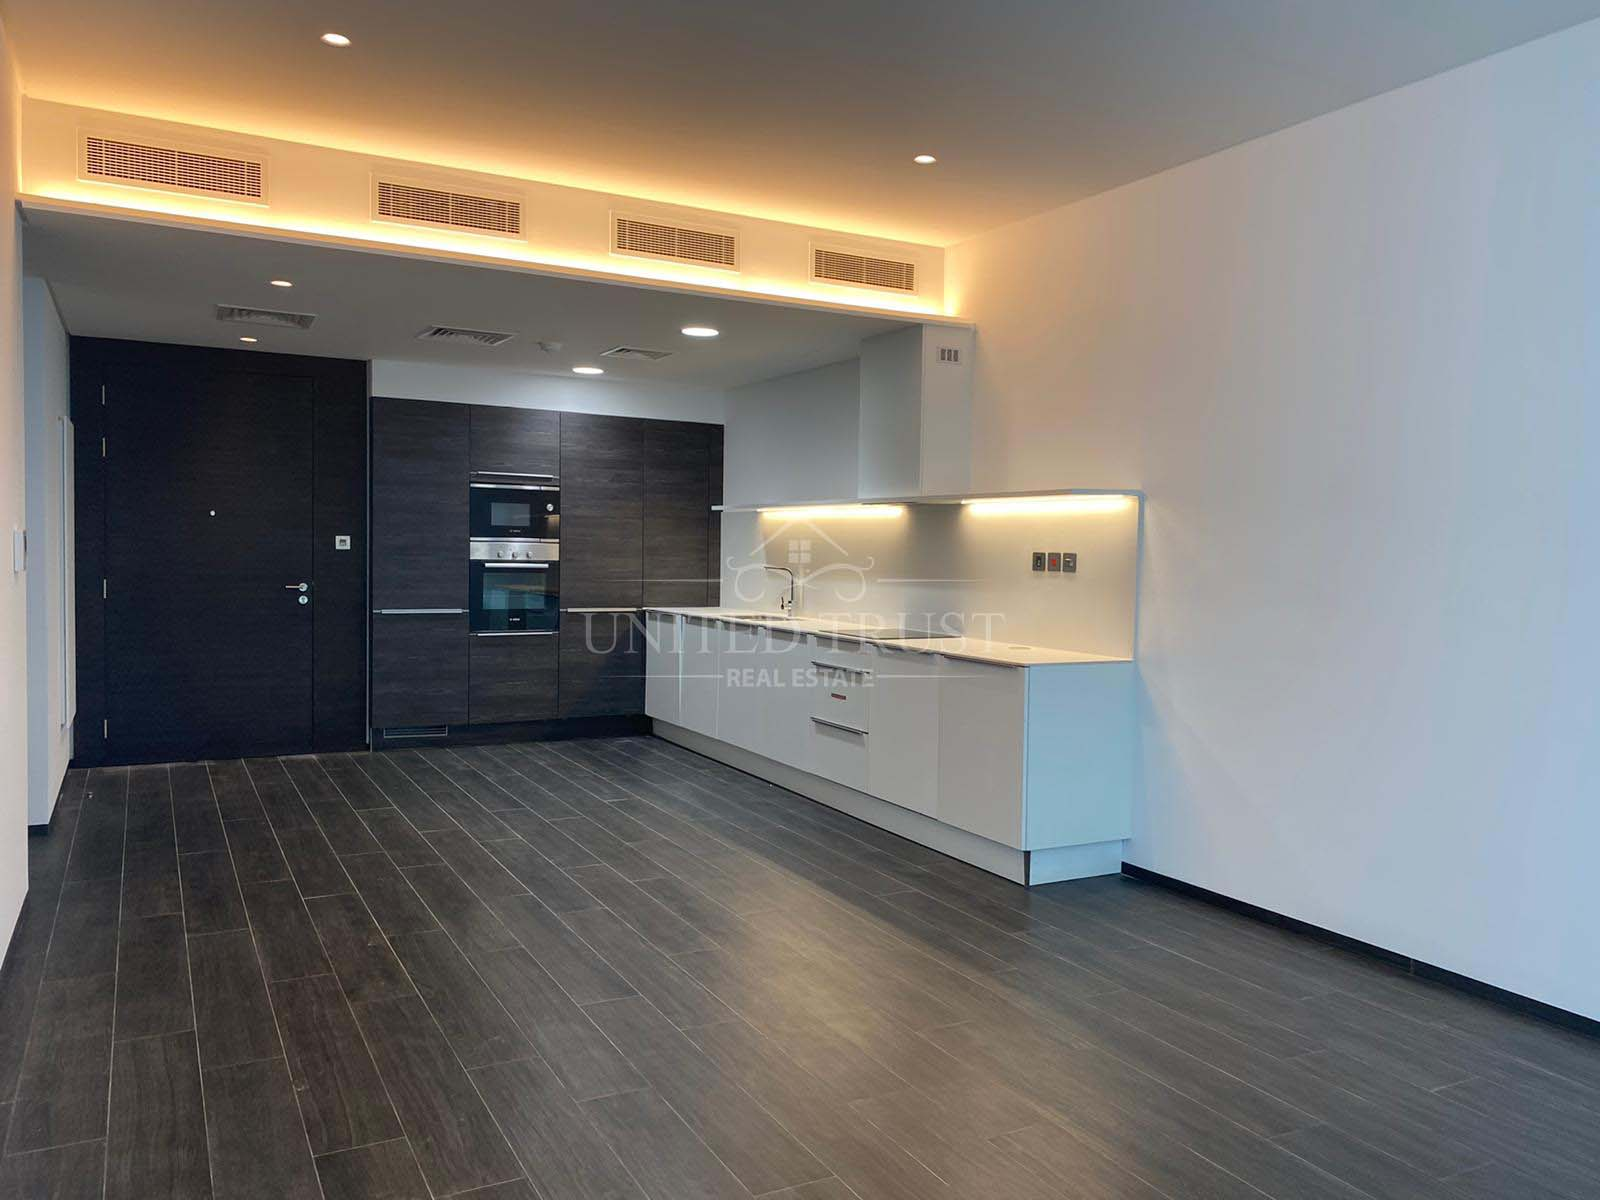 For Sale Luxury Apartment in Financial Harbour Ref: BBA-SB-017